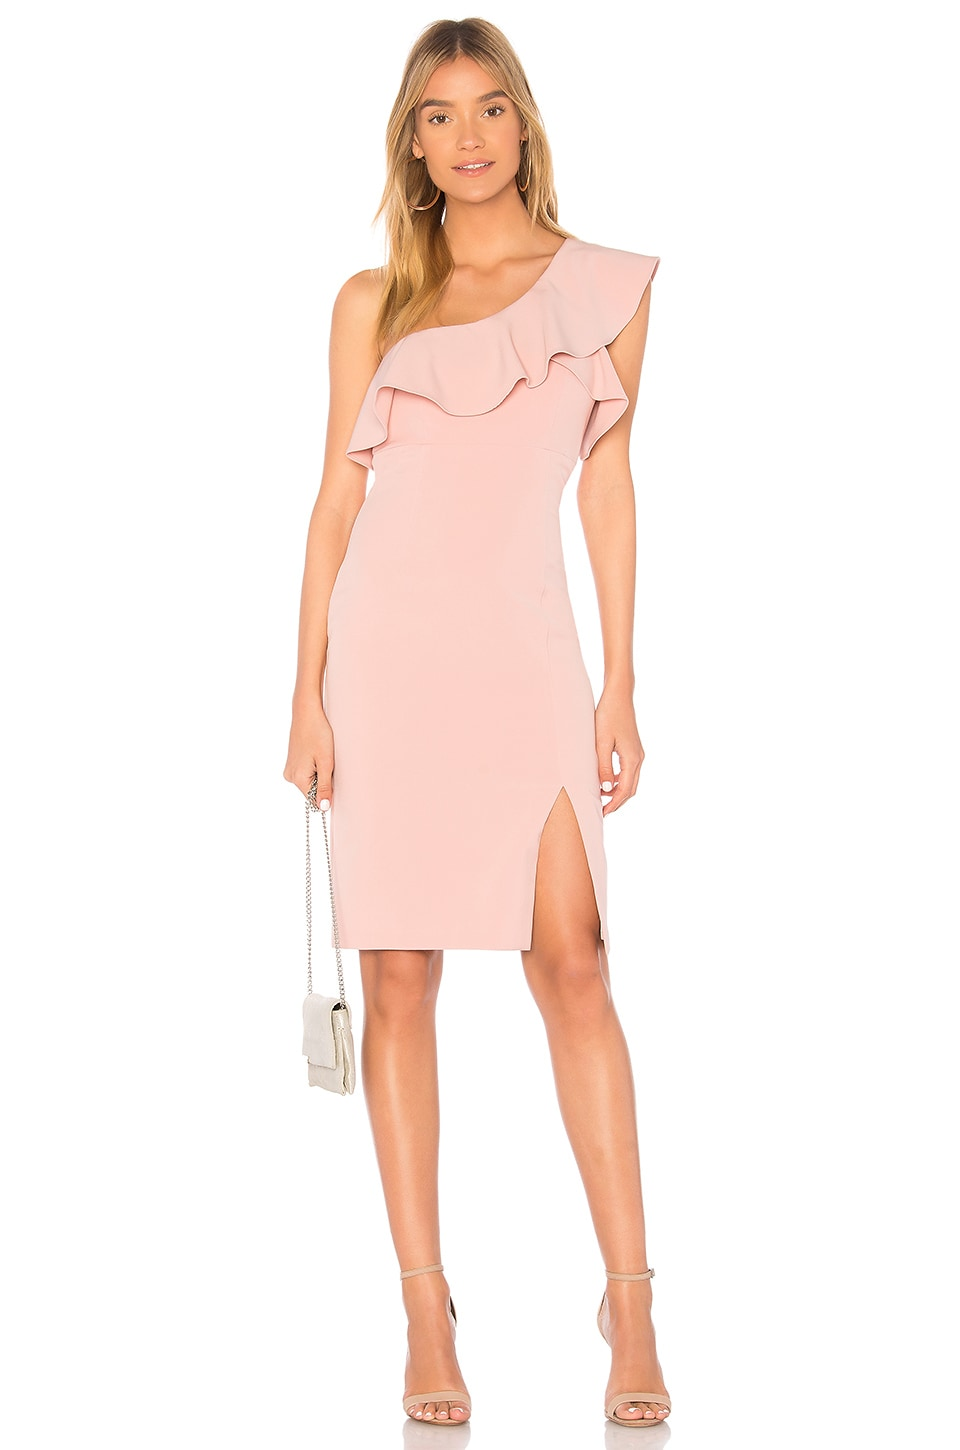 Bardot Ruffle Dress in Pastel